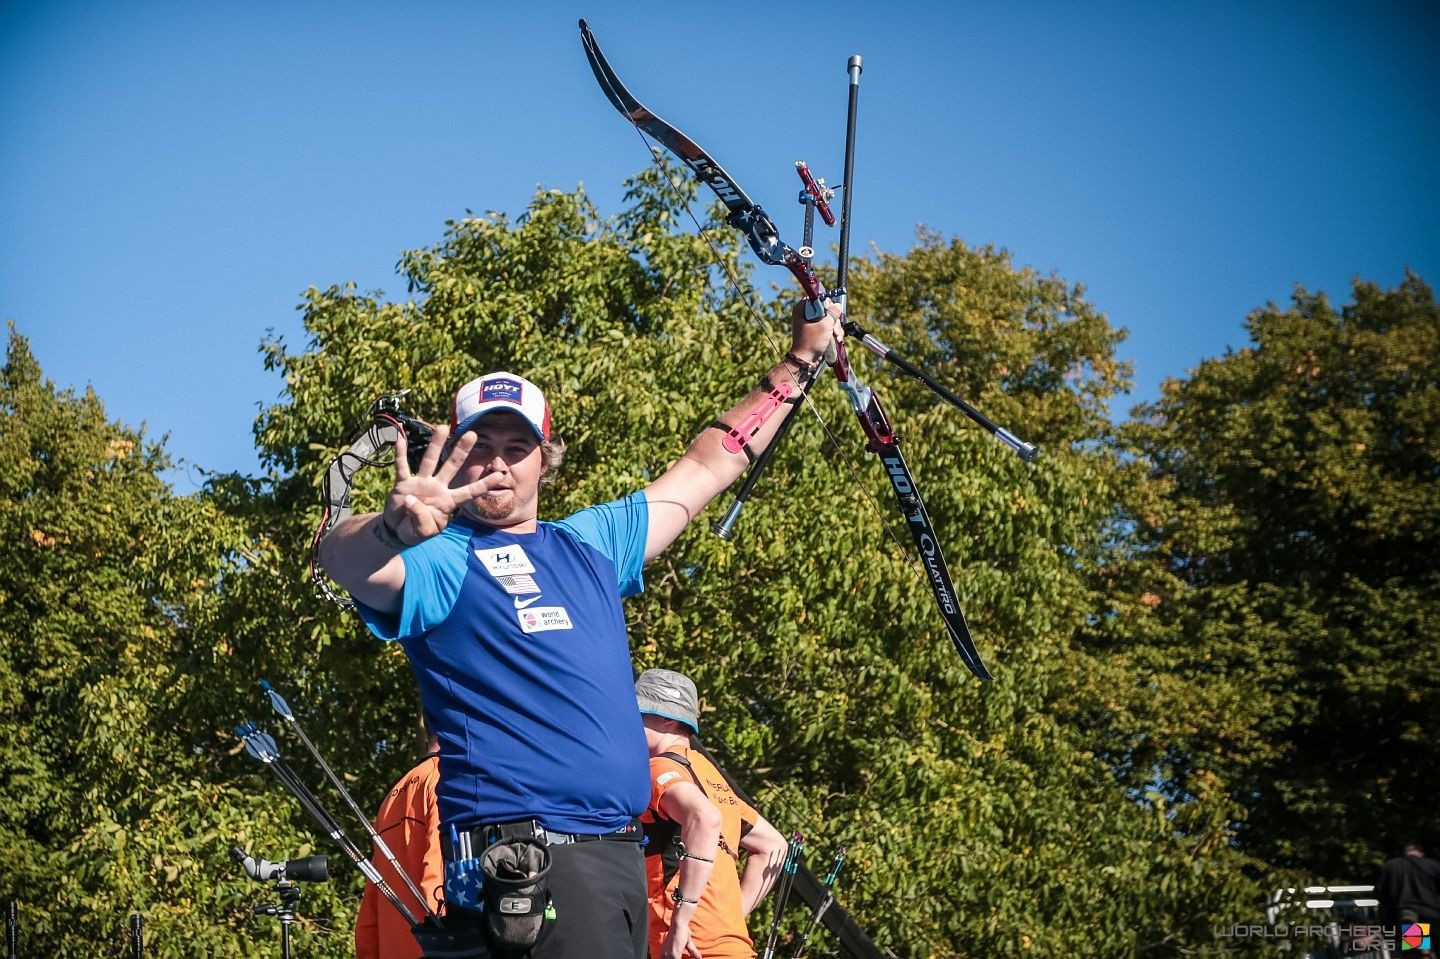 Four-time Archery World Cup Final winner Brady Ellison is considered the man to beat in the men's recurve event ©World Archery